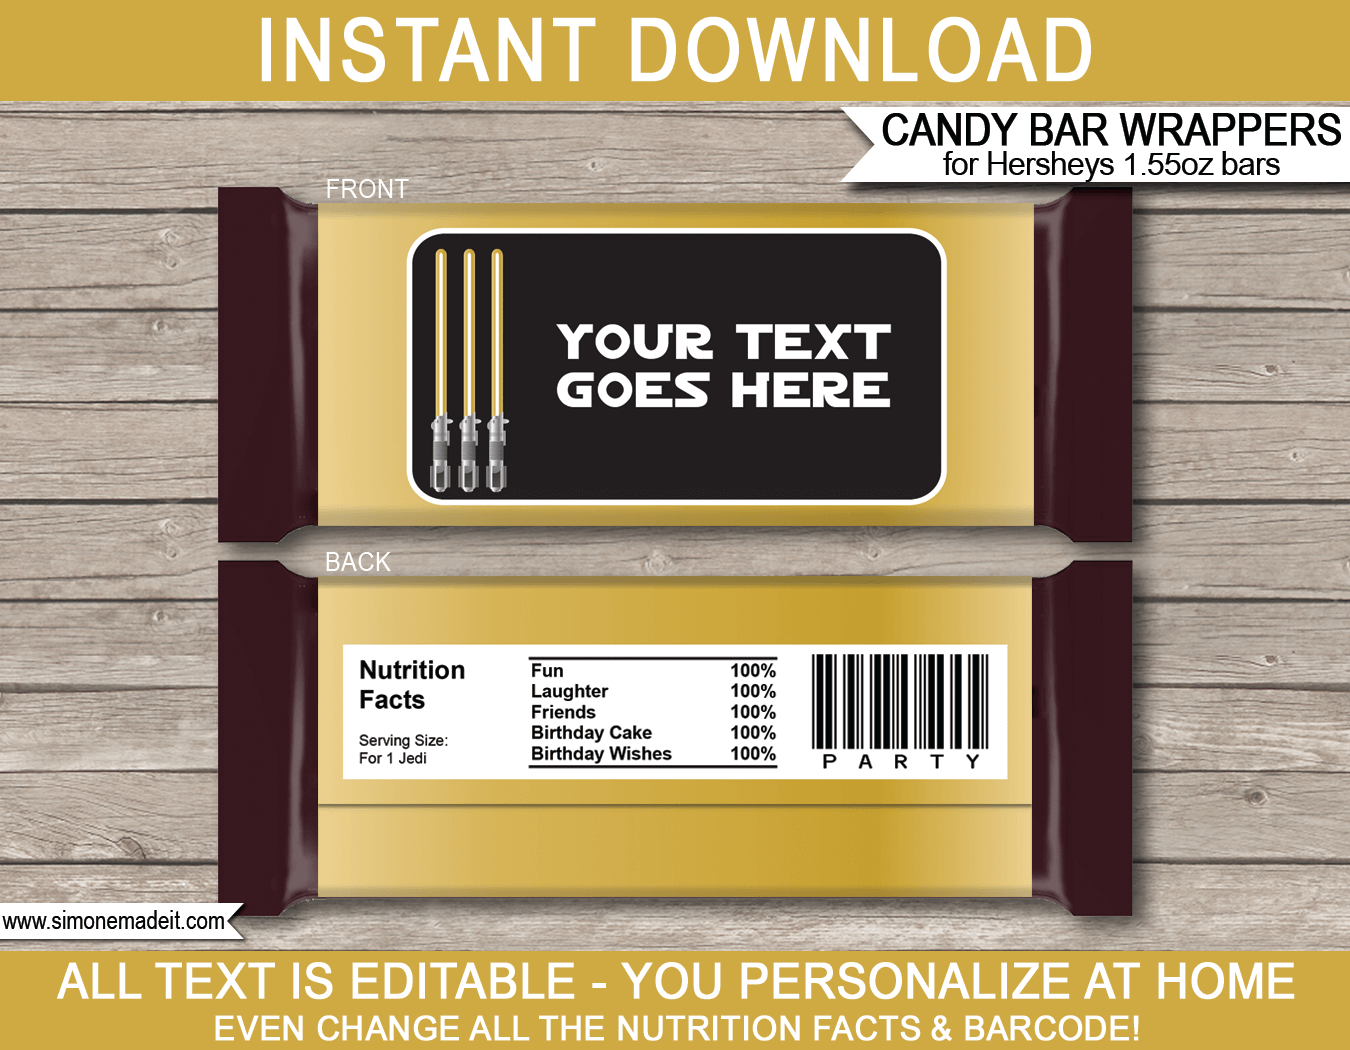 Gold star wars party hershey candy bar wrappers hershey labels gold star wars party hershey candy bar wrappers birthday party favors personalized candy bars maxwellsz